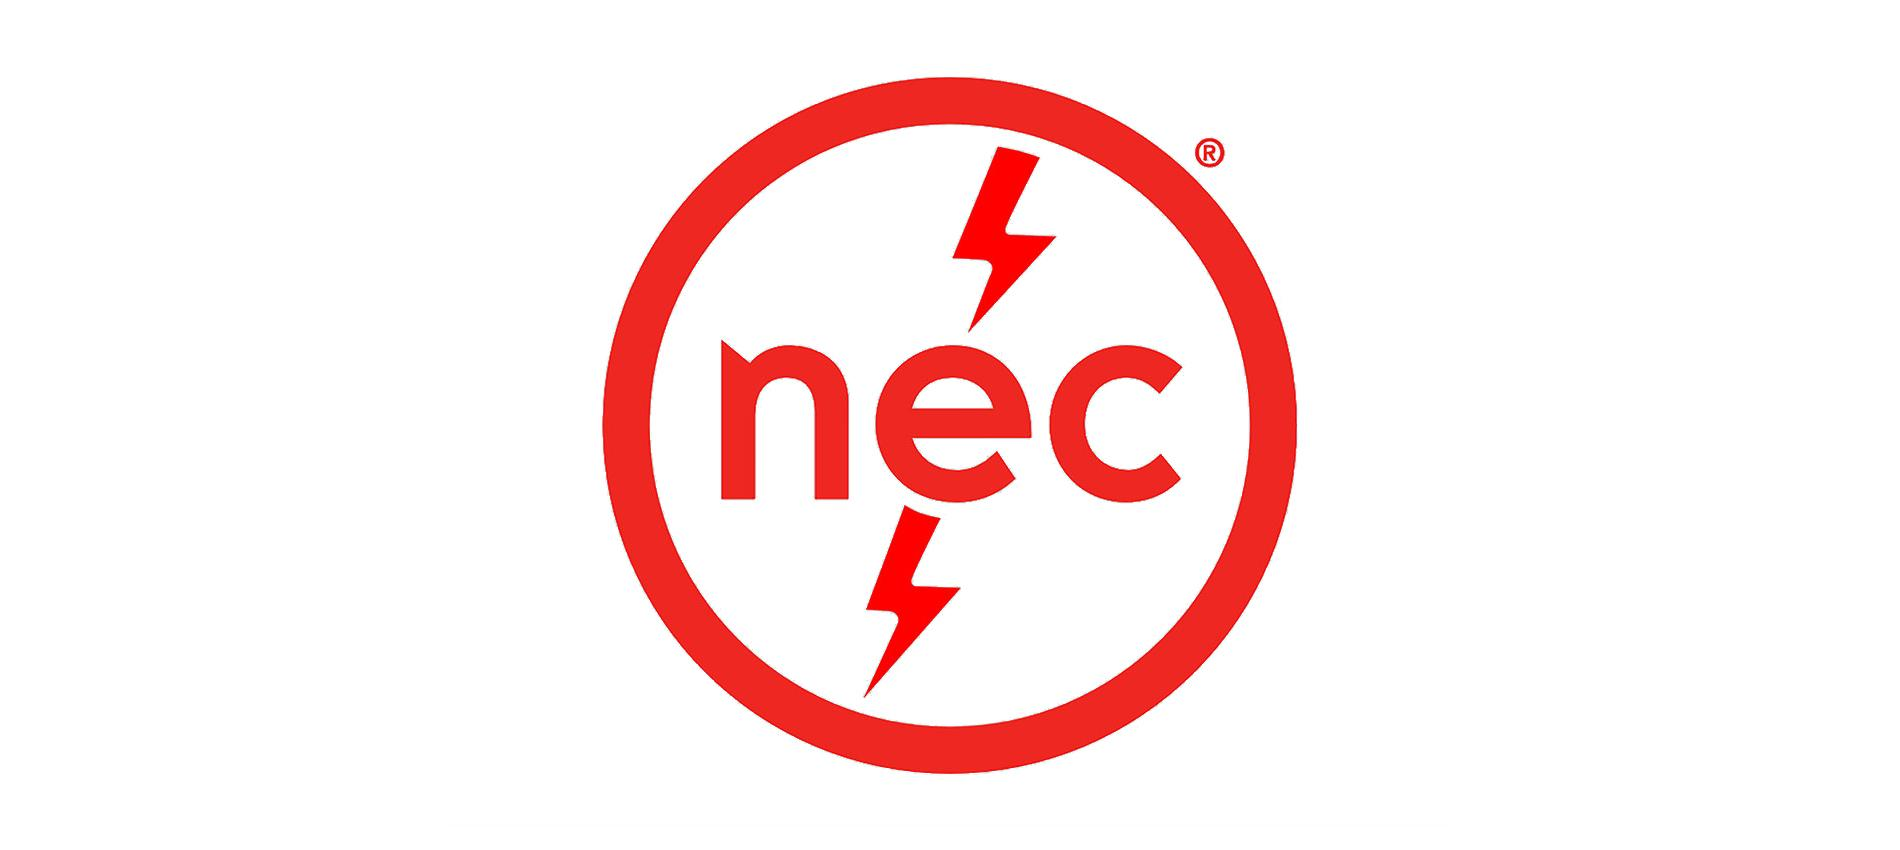 important intricacies fire alarm system requirements in the nec